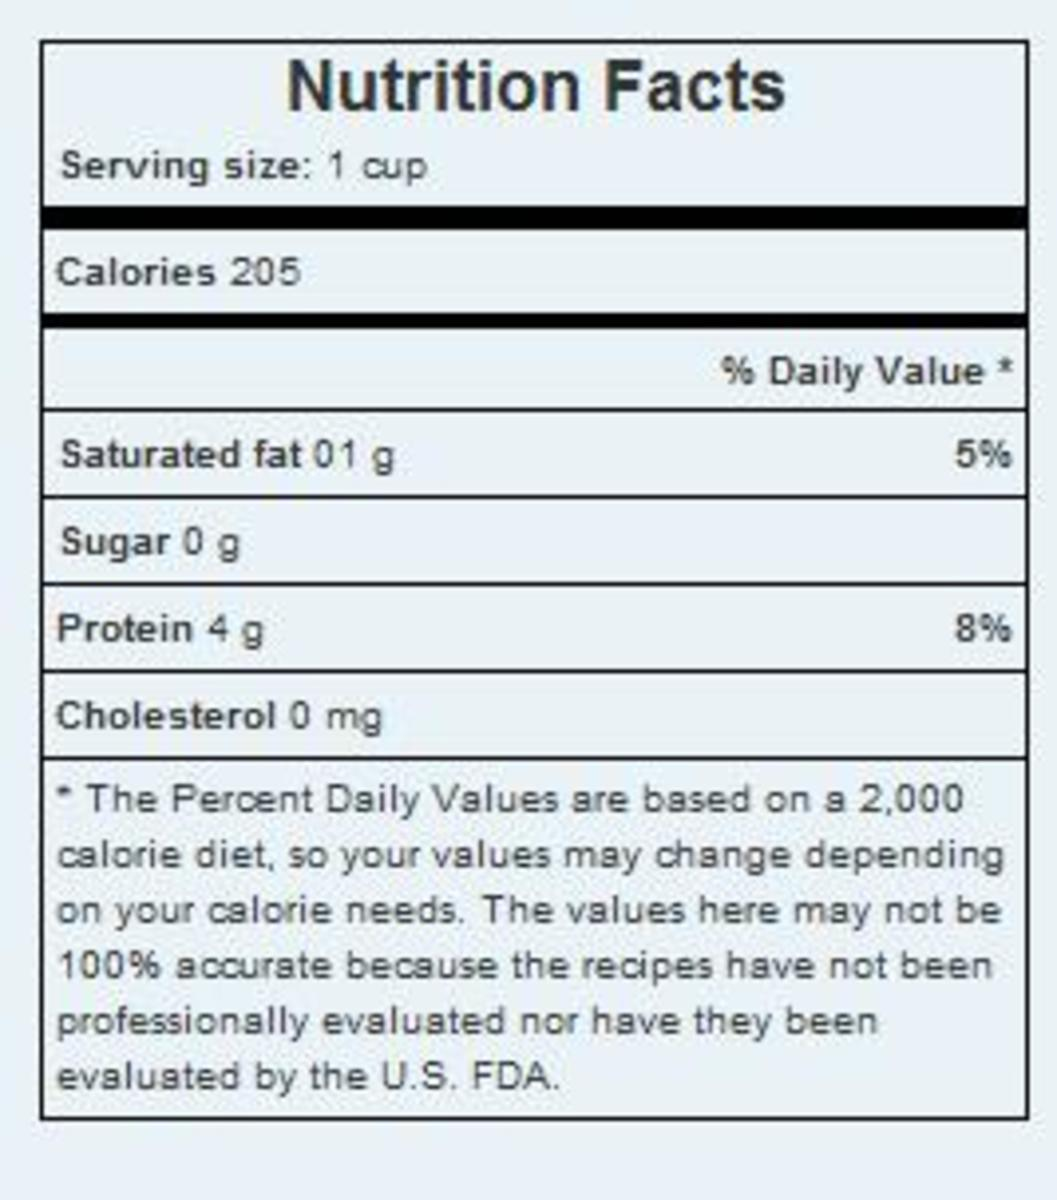 sample nutrition facts, the values are taken from recipe calculator